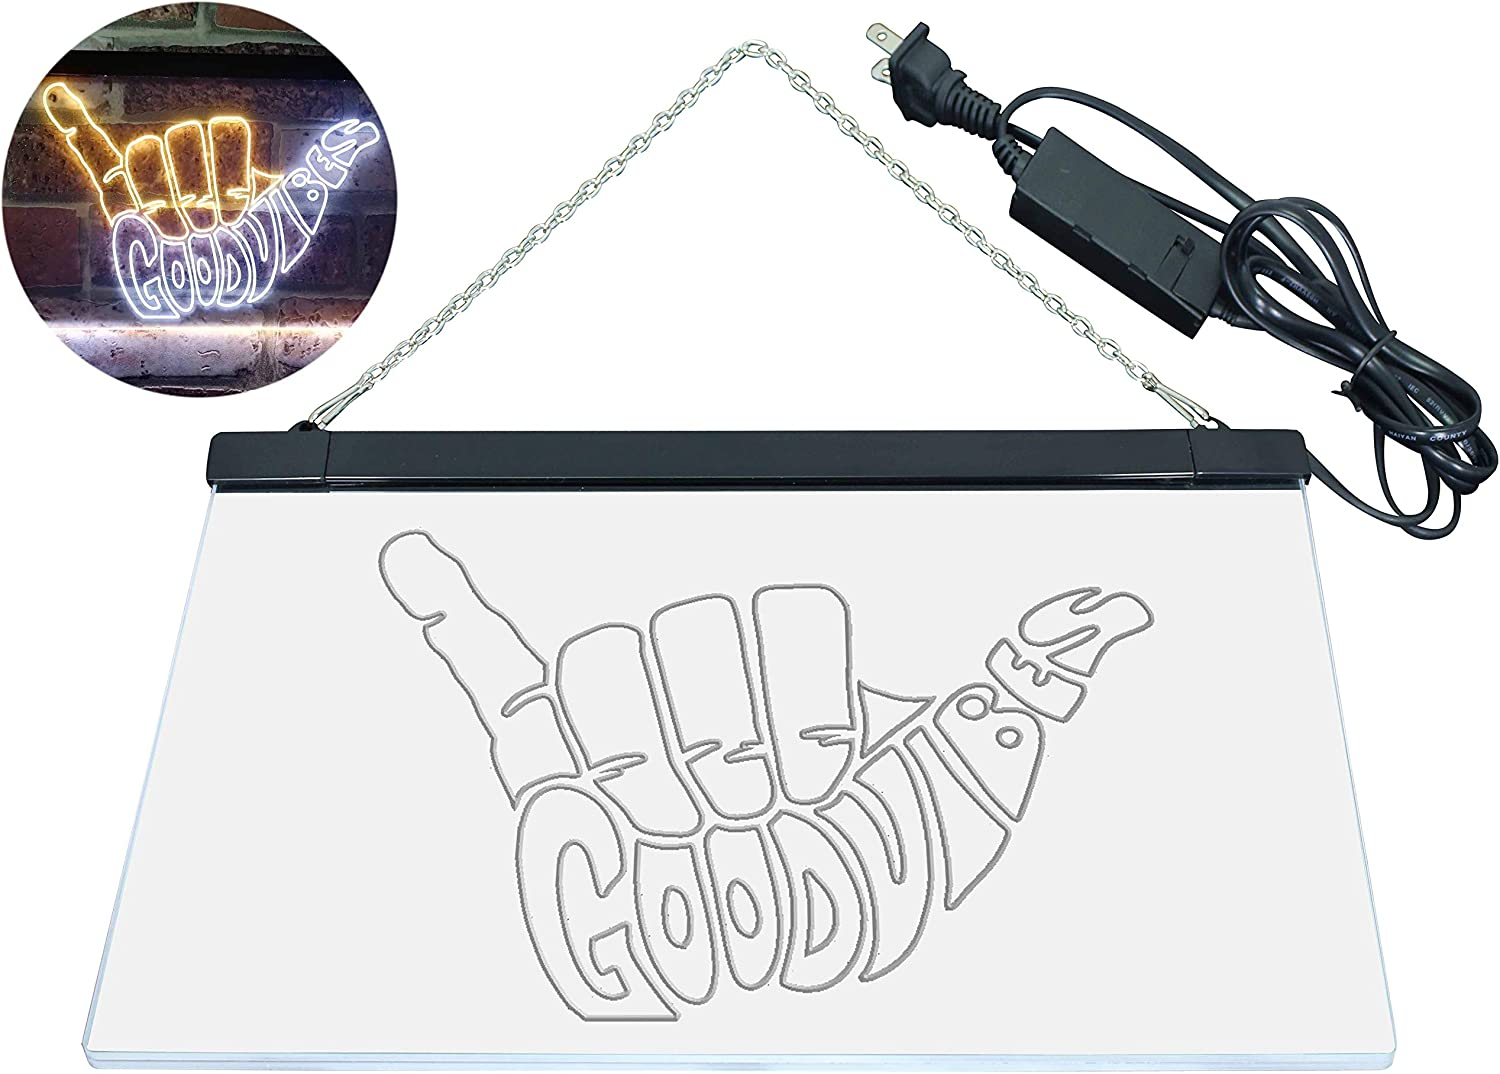 ADV PRO Good Vibes Only Hand Party Decoration Dual Color LED Barlicht Neonlicht Lichtwerbung Neon Sign Blau /& Gelb 300 x 210mm st6s32-i1076-by